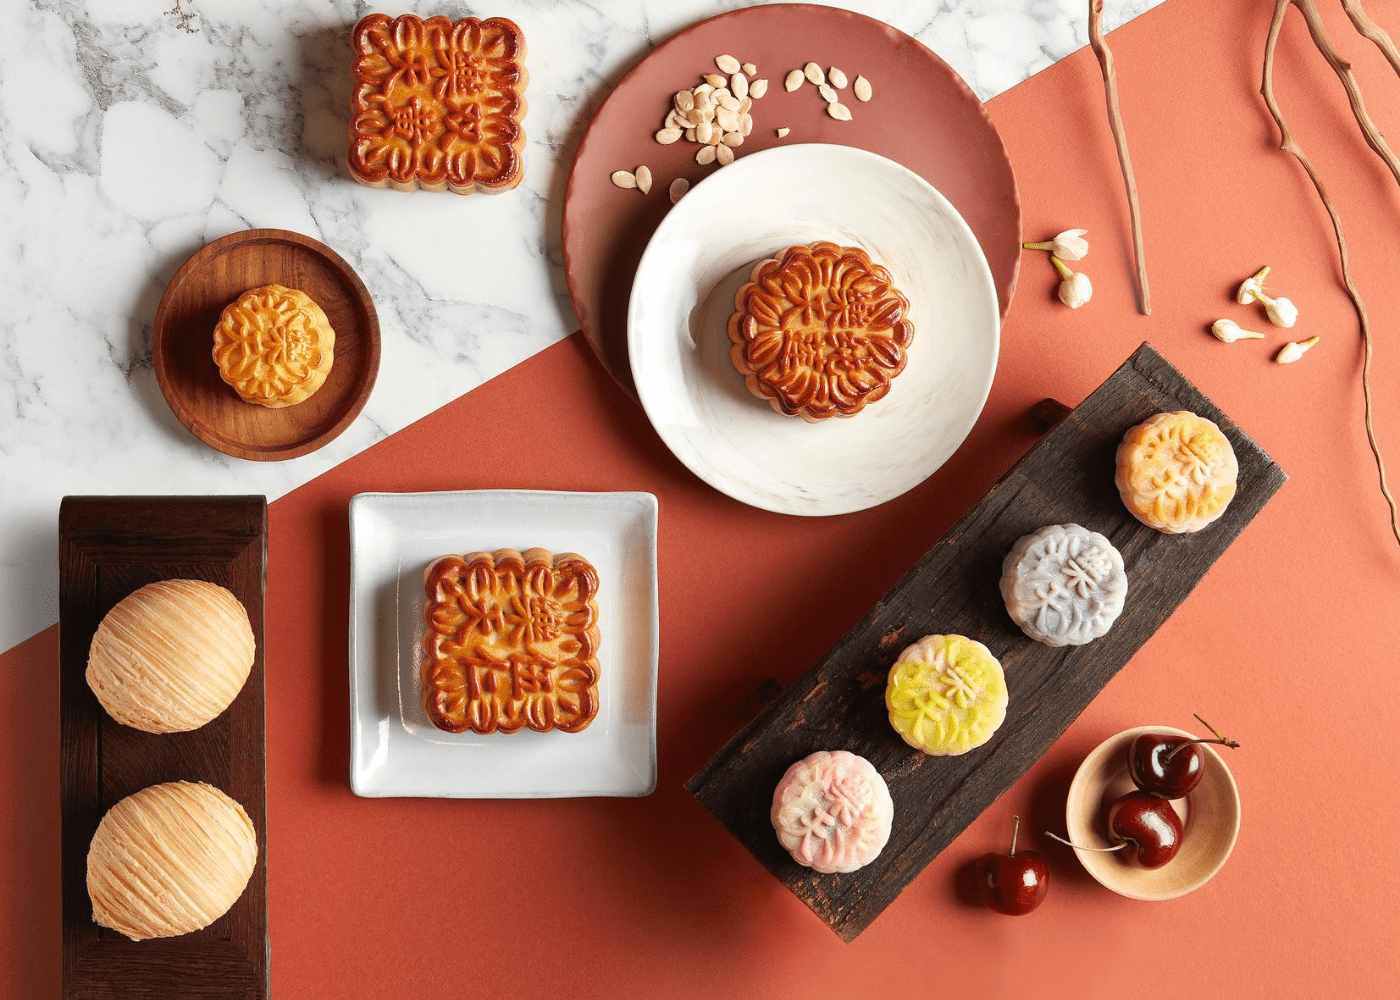 Mooncake mania: Traditional and unique mooncakes in Singapore that take the cake